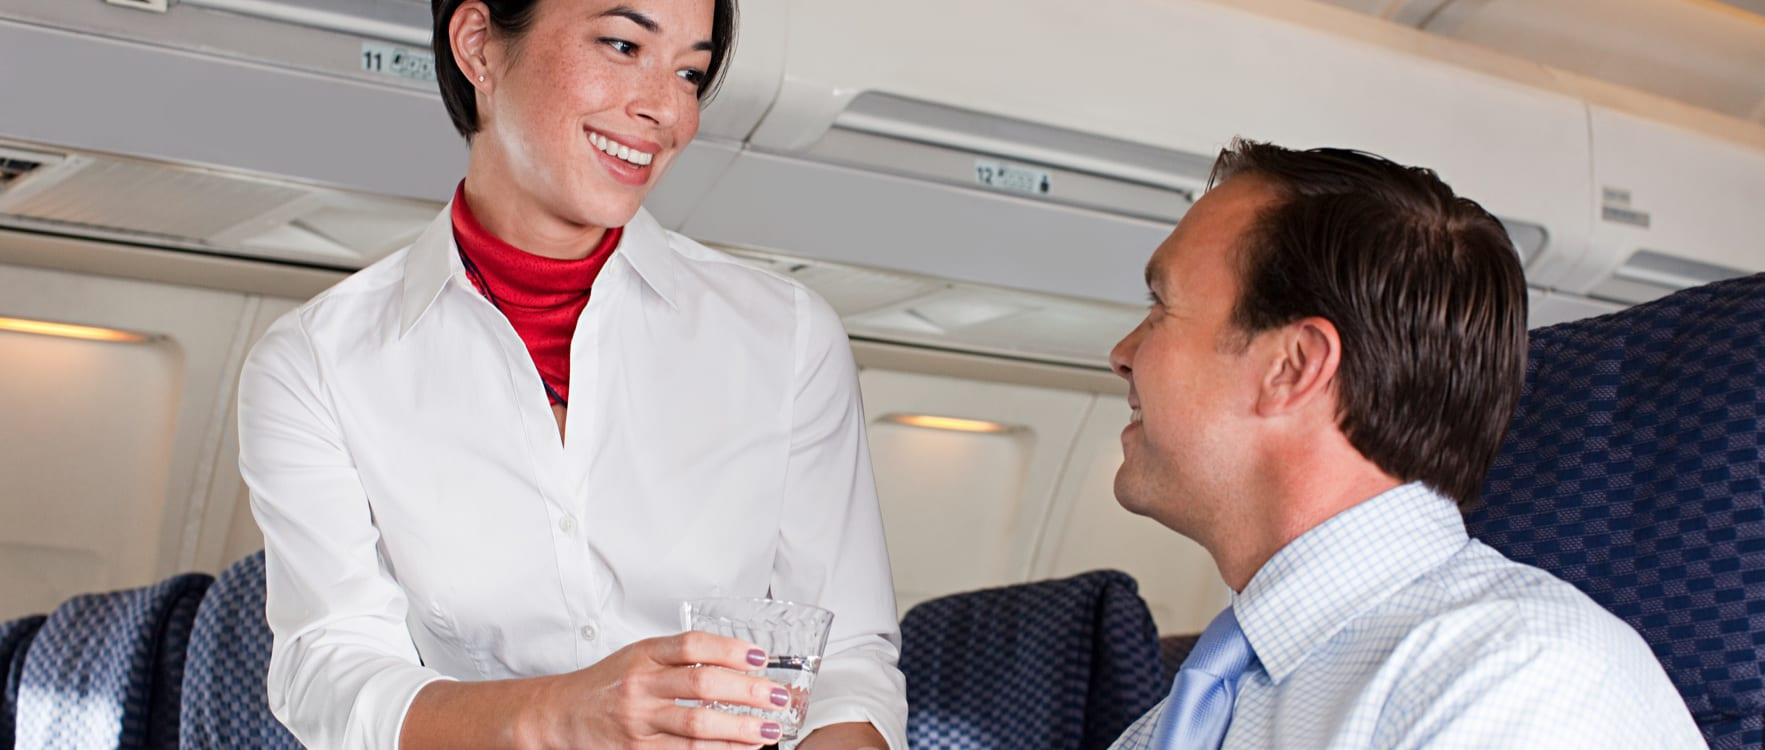 Air hostess serving a drink to a male passenger